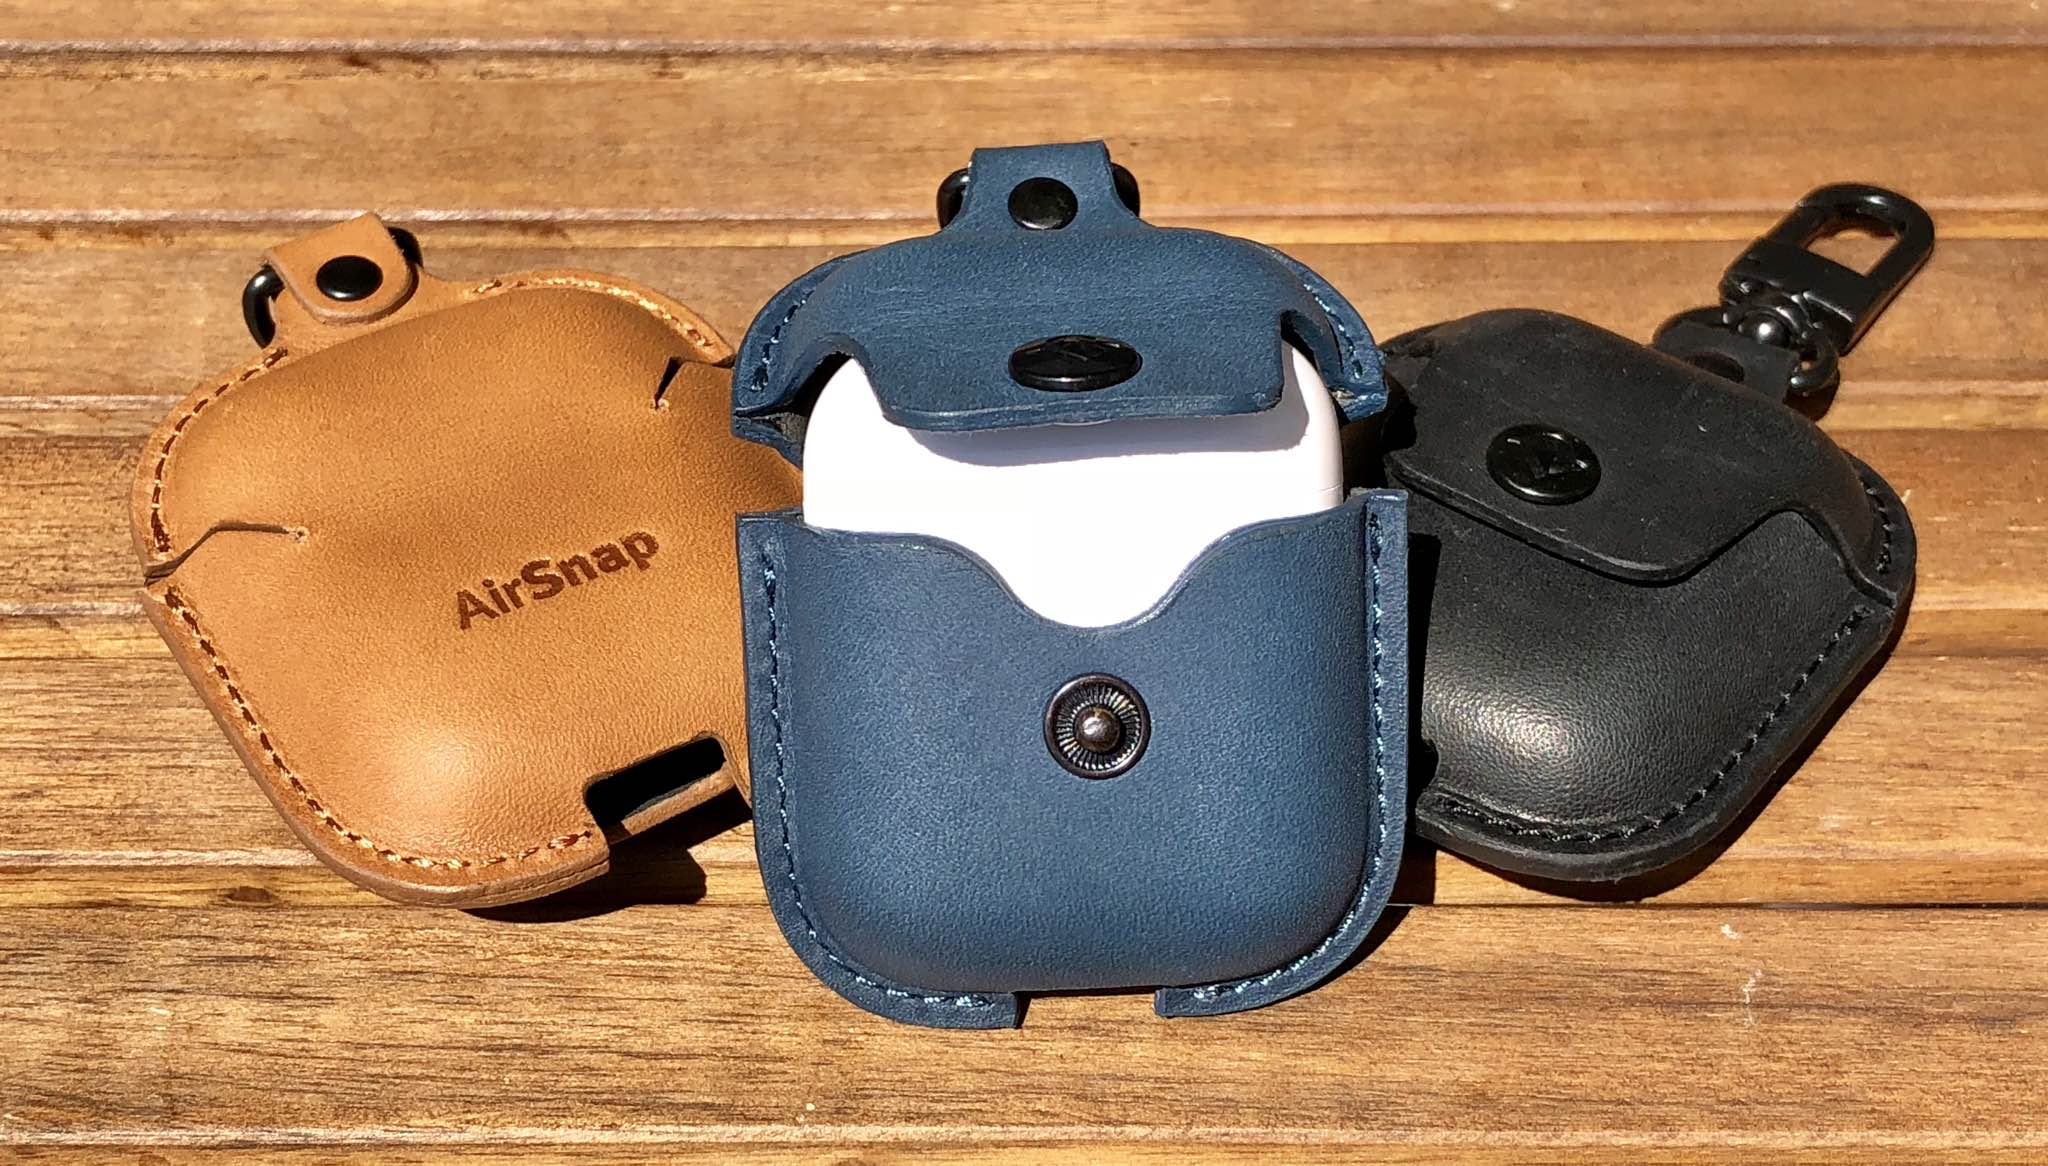 The AirSnap case from Twelve South is made to protect your AirPods charging case